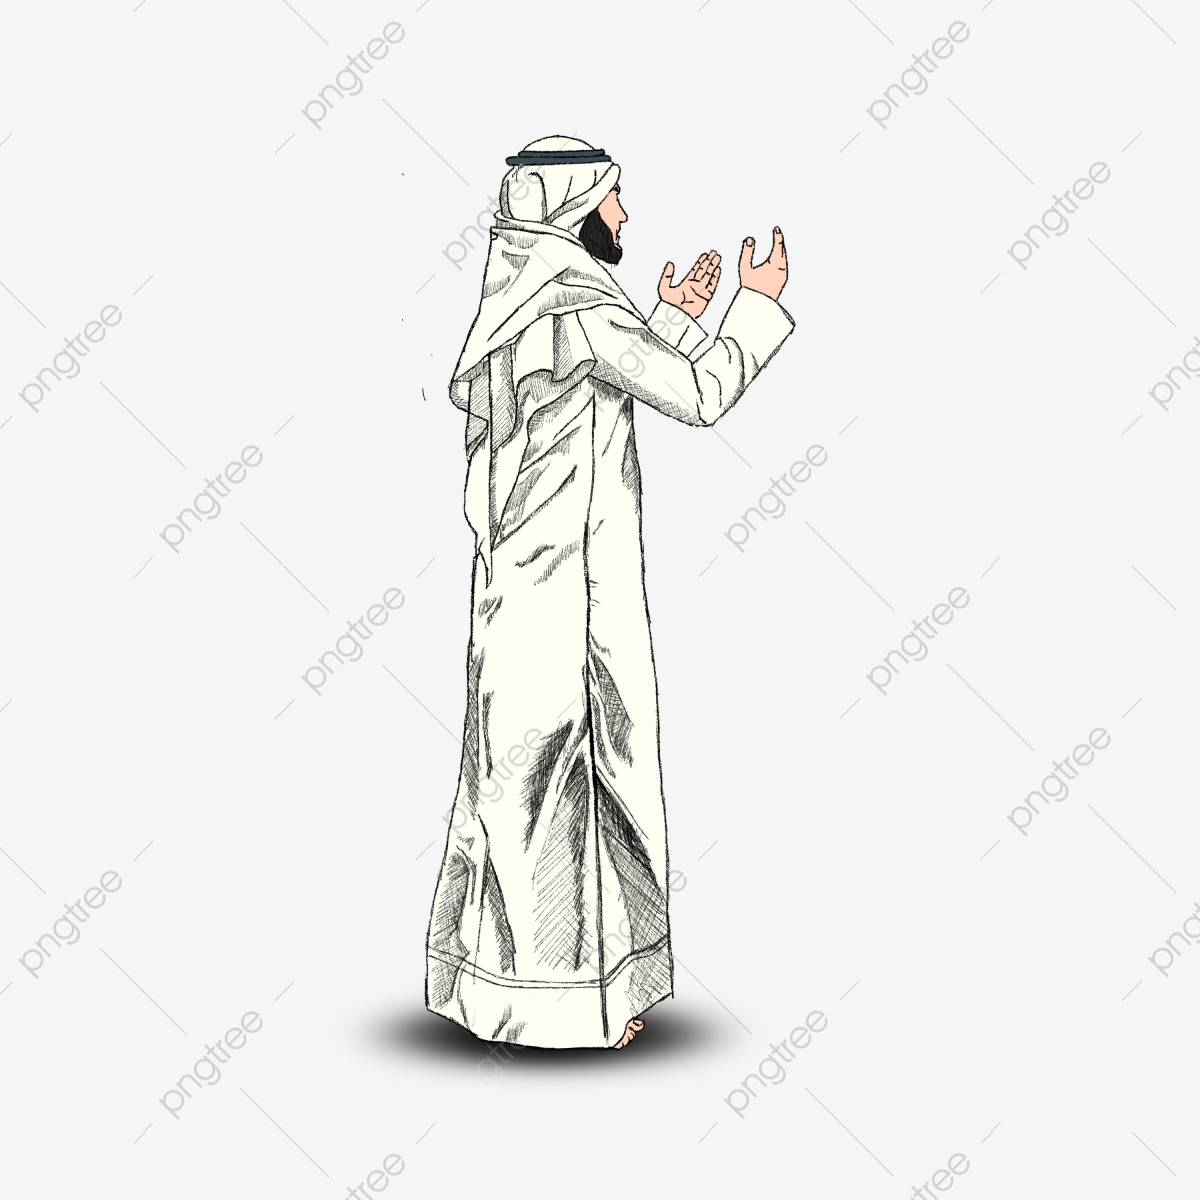 Muslim Man Wearing Robe Side View Illustration Religion Cartoon Png Transparent Clipart Image And Psd File For Free Download